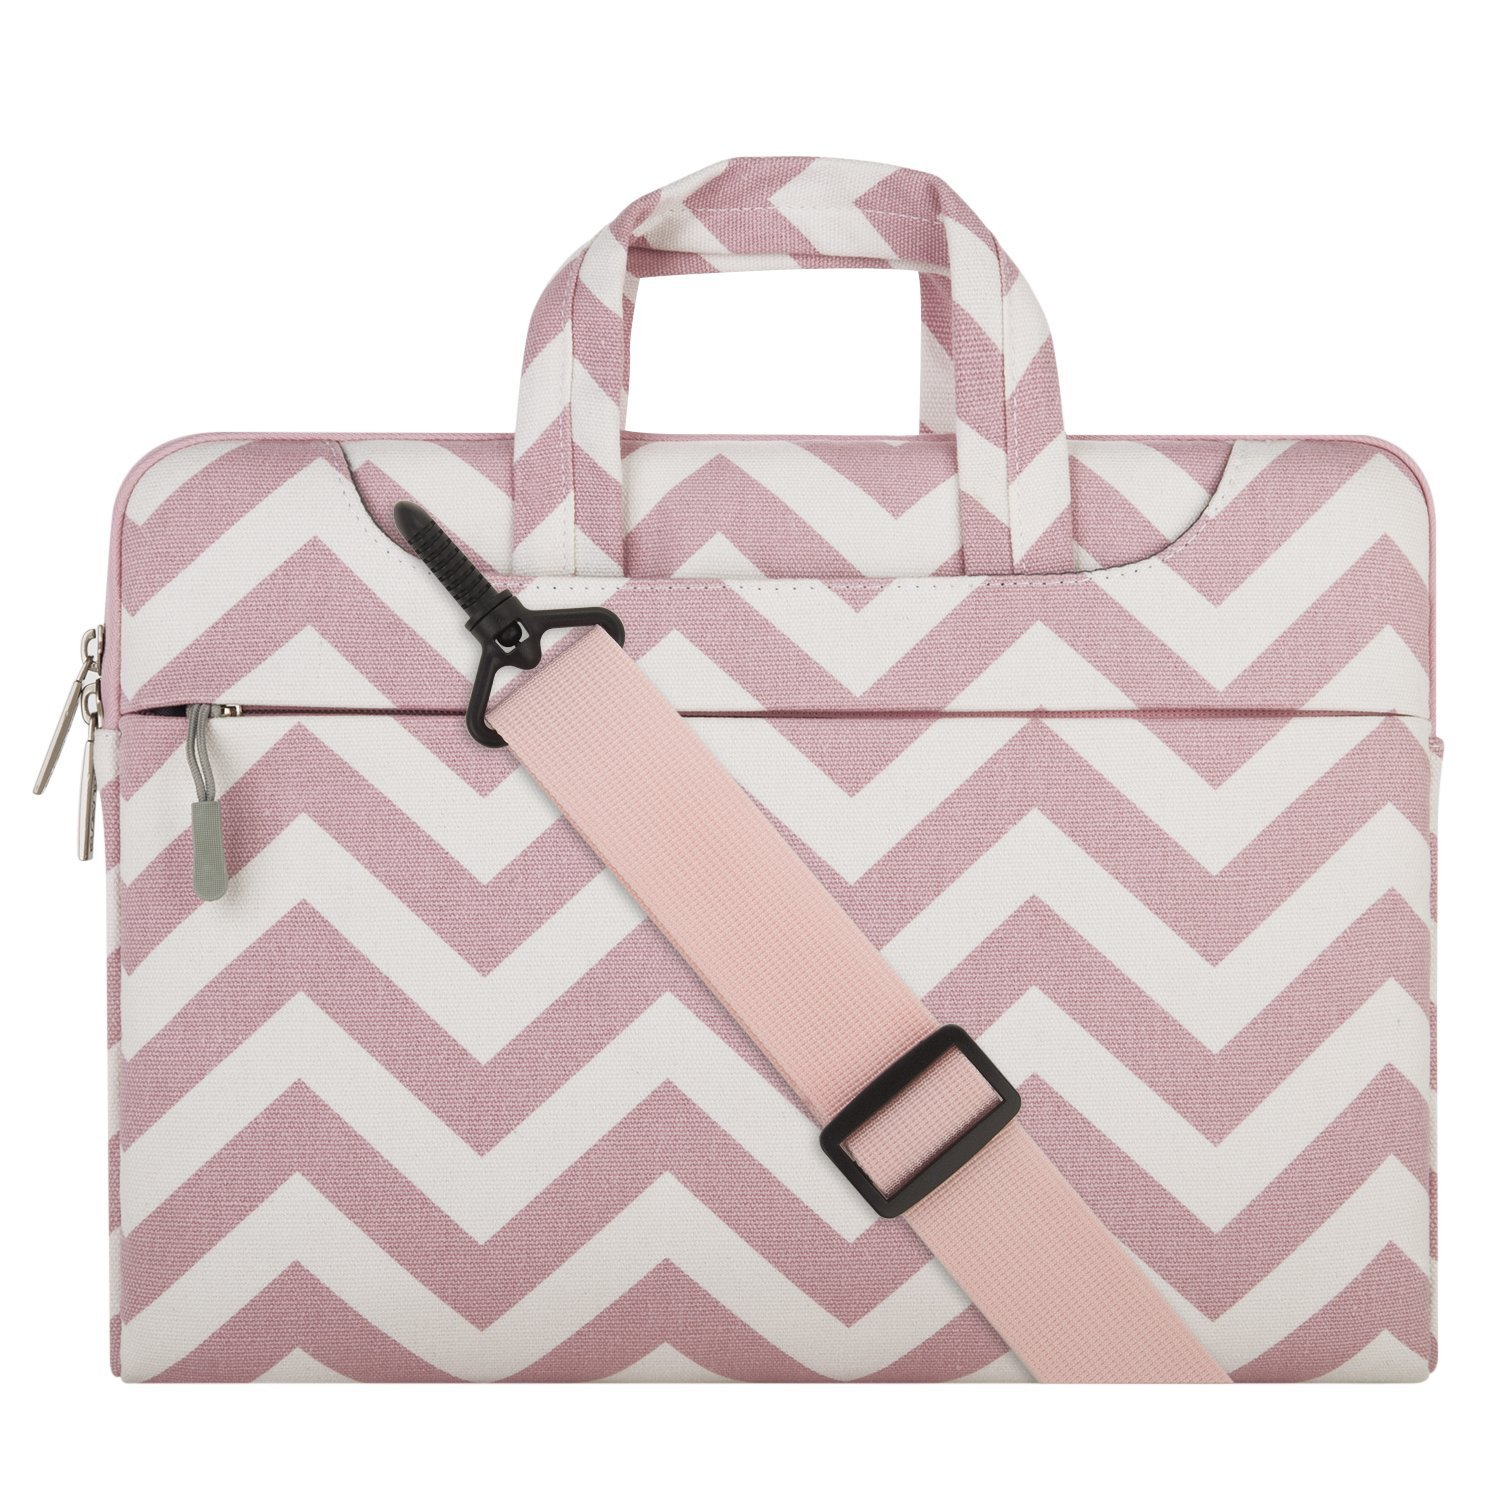 Mosiso Chevron Style Fabric Laptop Sleeve Case Cover Bag with Shoulder Strap for 13-13.3 Inch MacBook Pro, MacBook Air, Notebook Computer, Pink